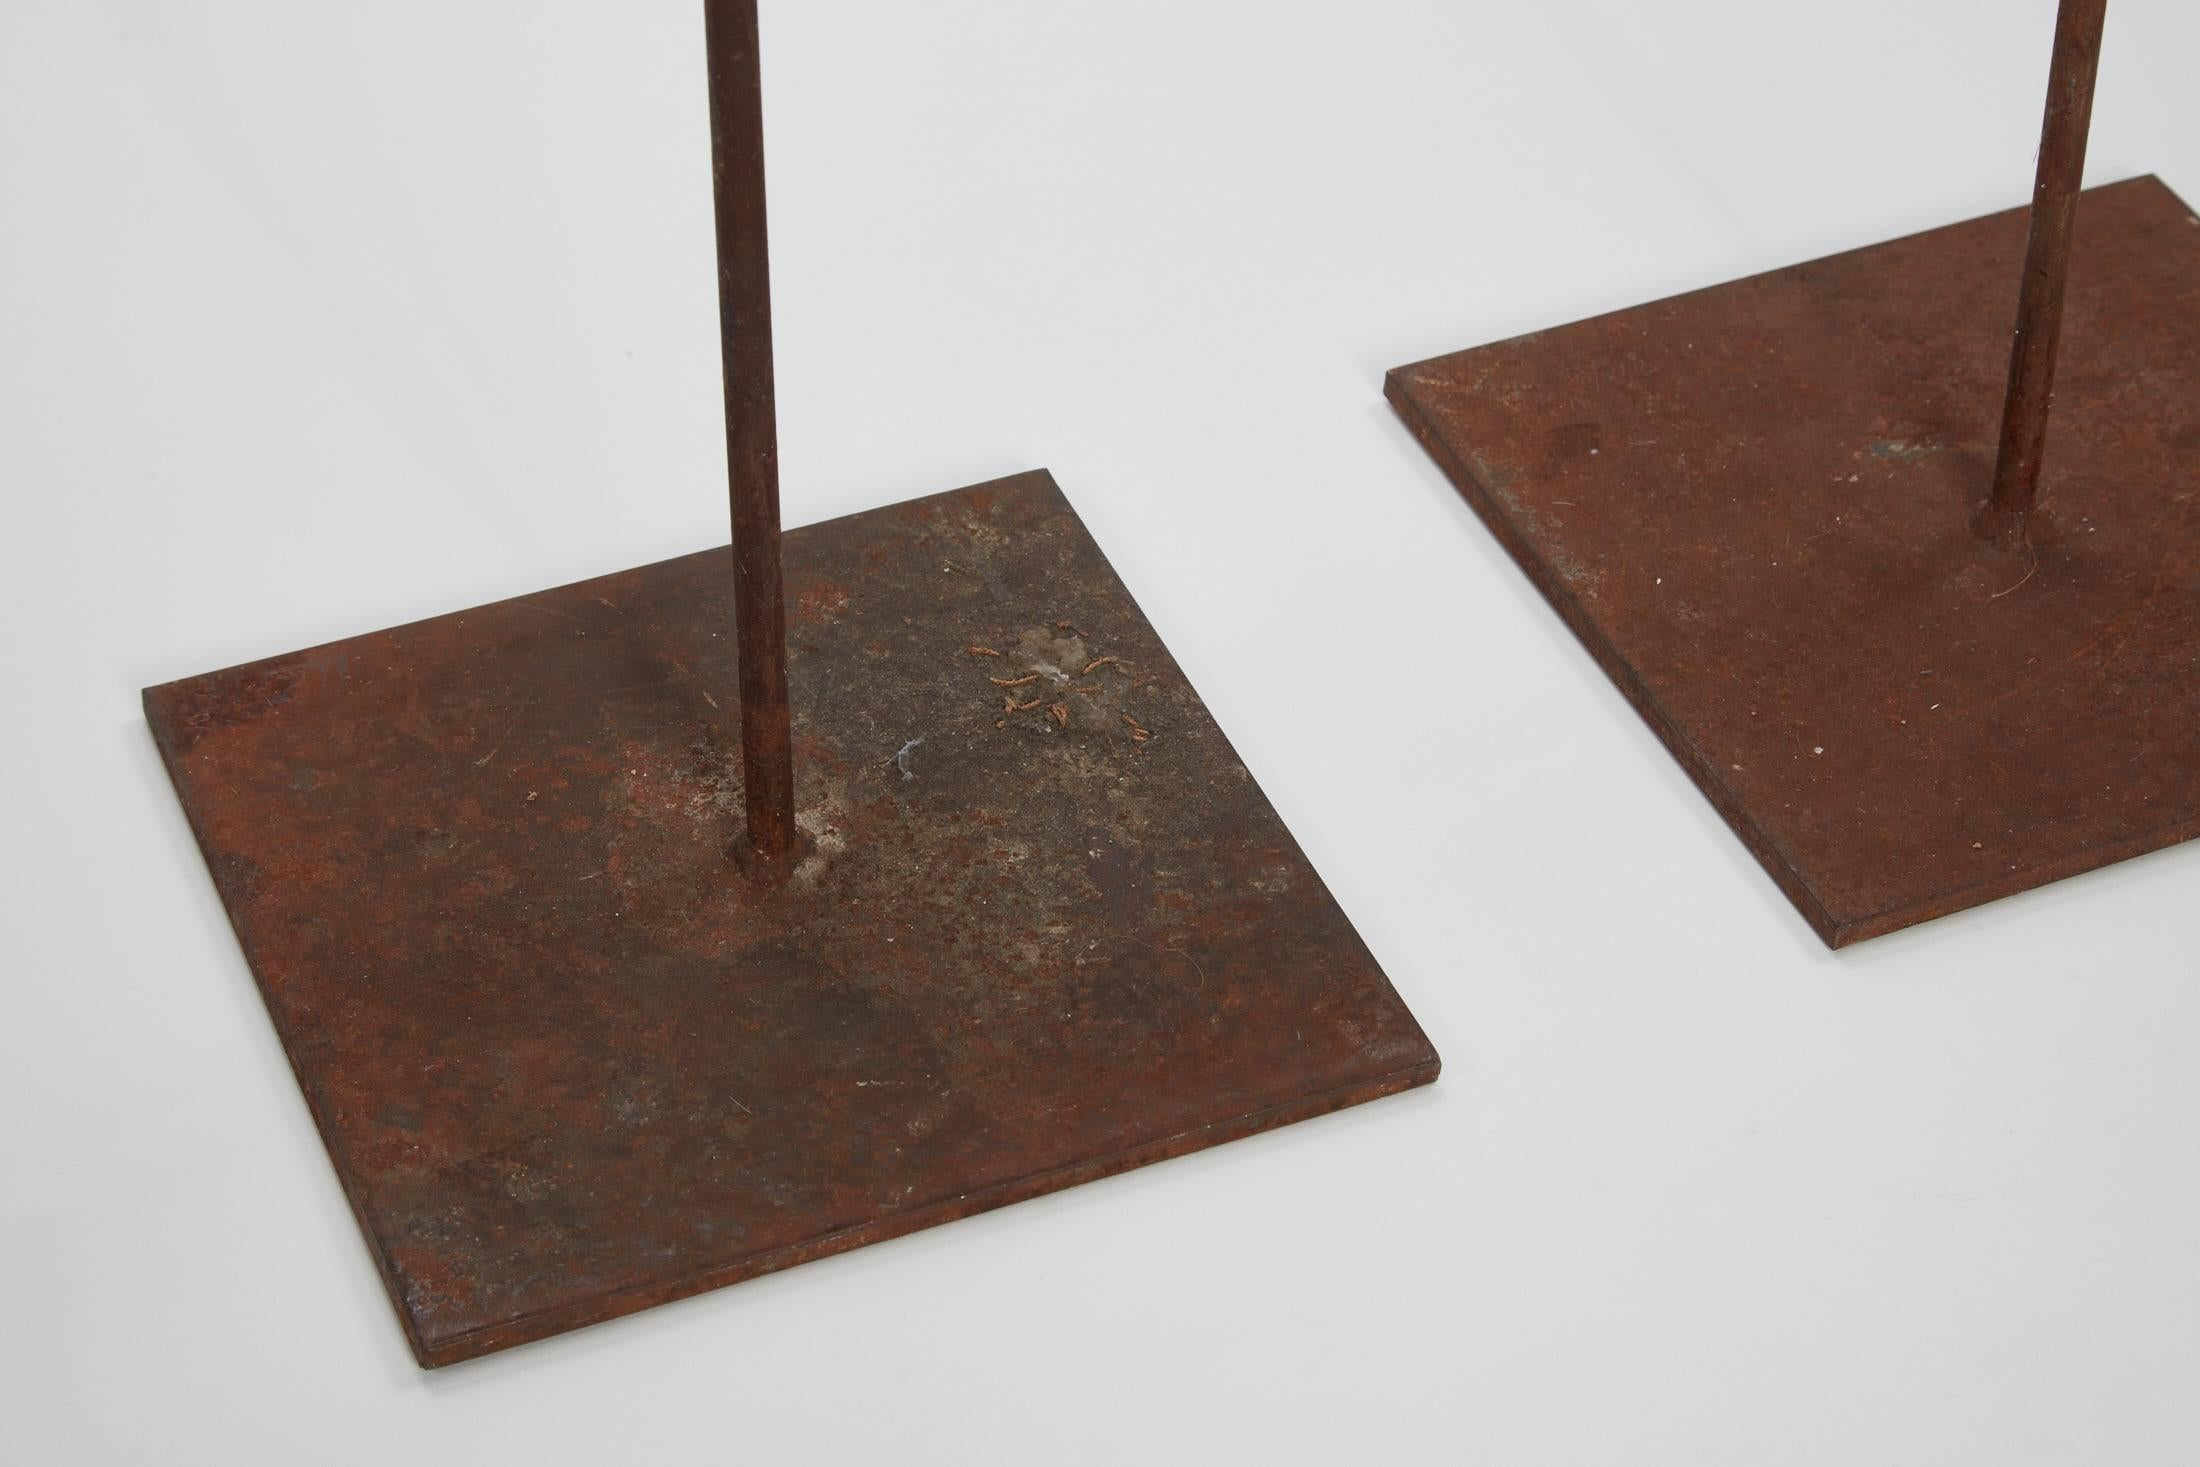 20th Century Pair Of Tall Floor Iron Candlesticks For Sale At 1stdibs